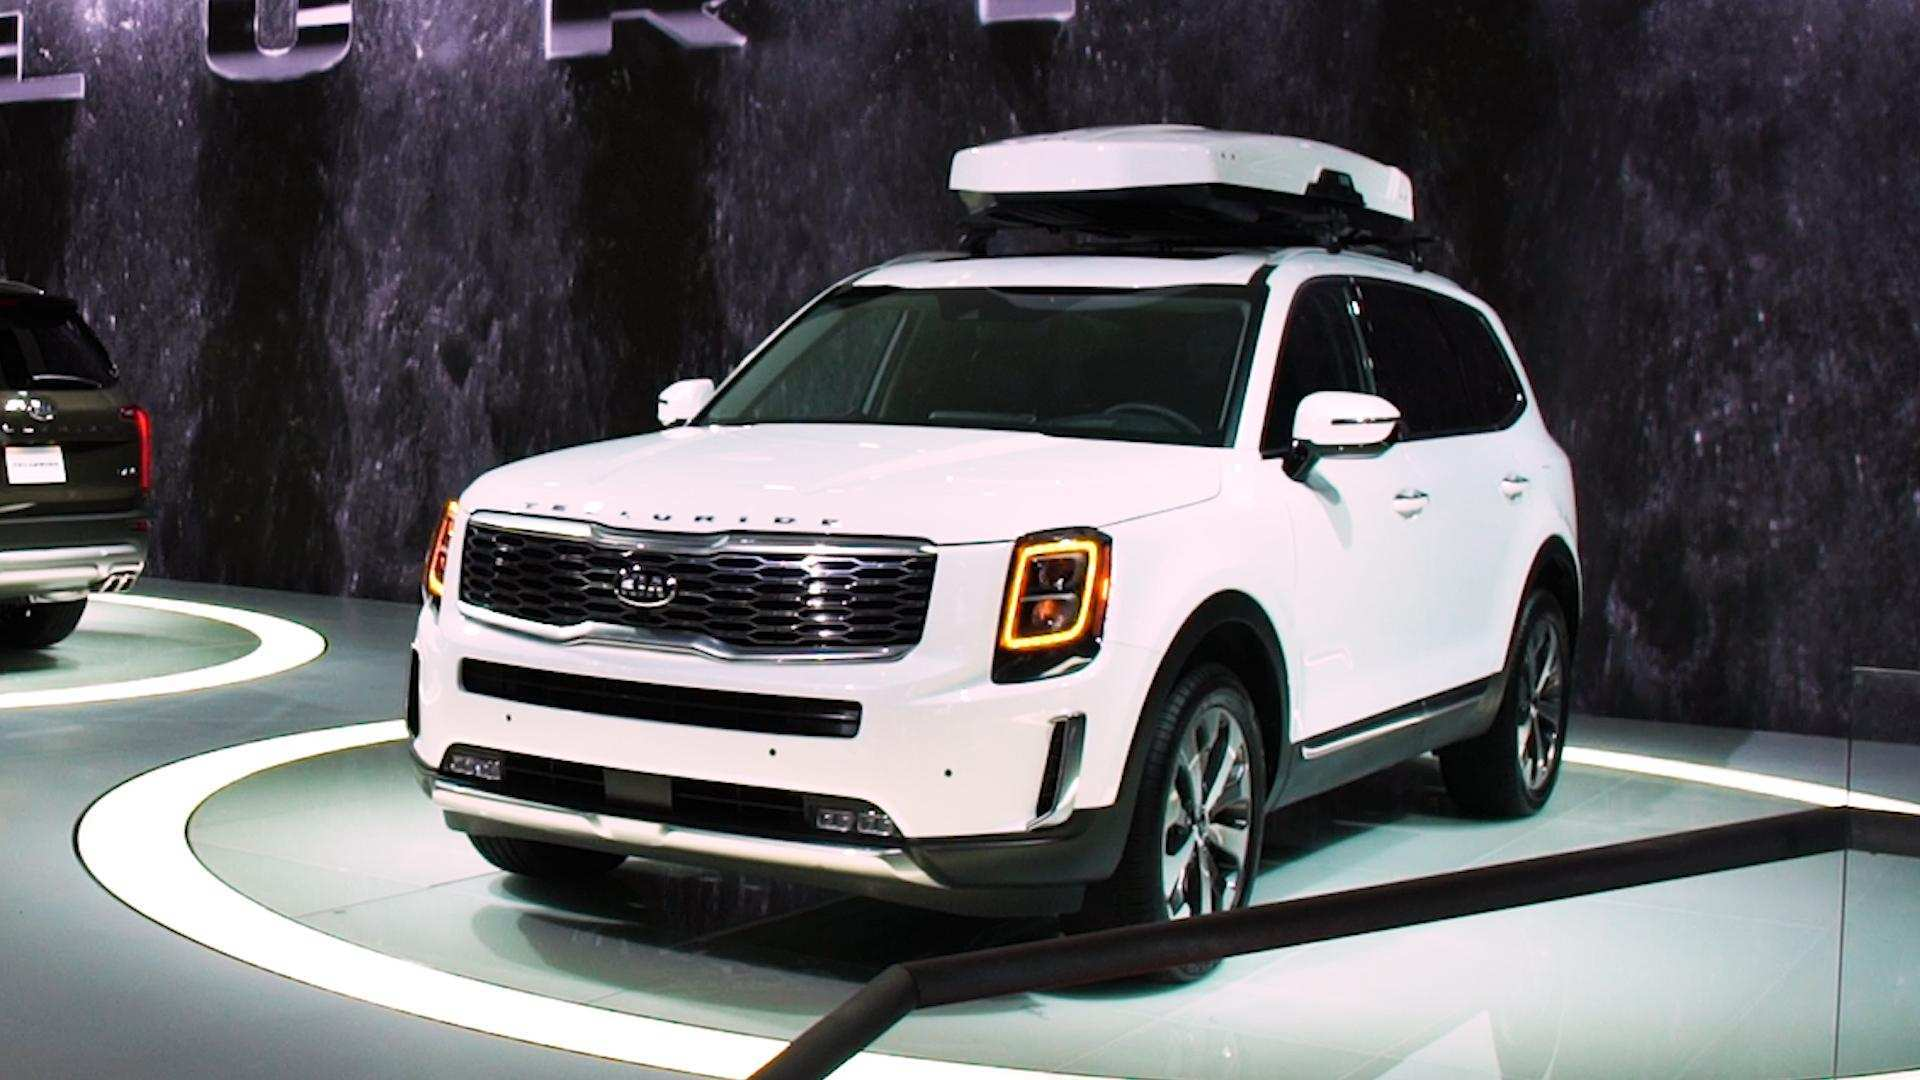 33 Best Review Kia Telluride 2020 Picture for Kia Telluride 2020